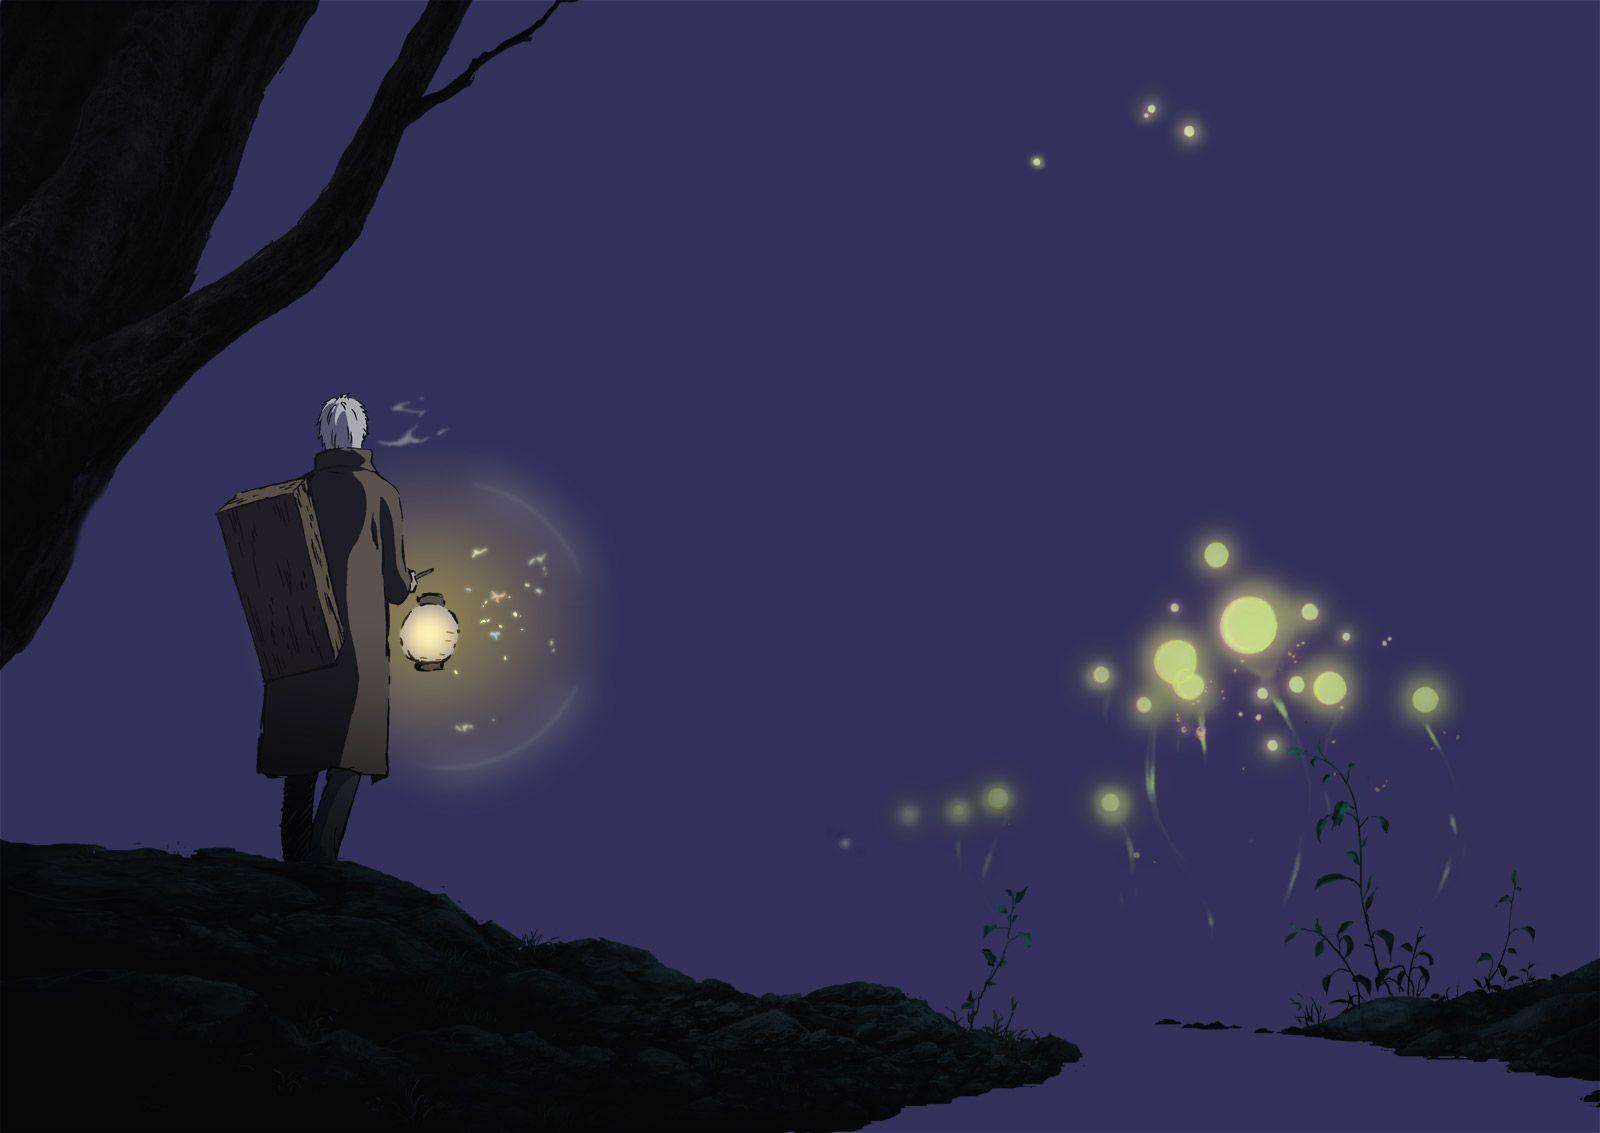 Mushishi wallpapers, Anime, HQ Mushishi pictures